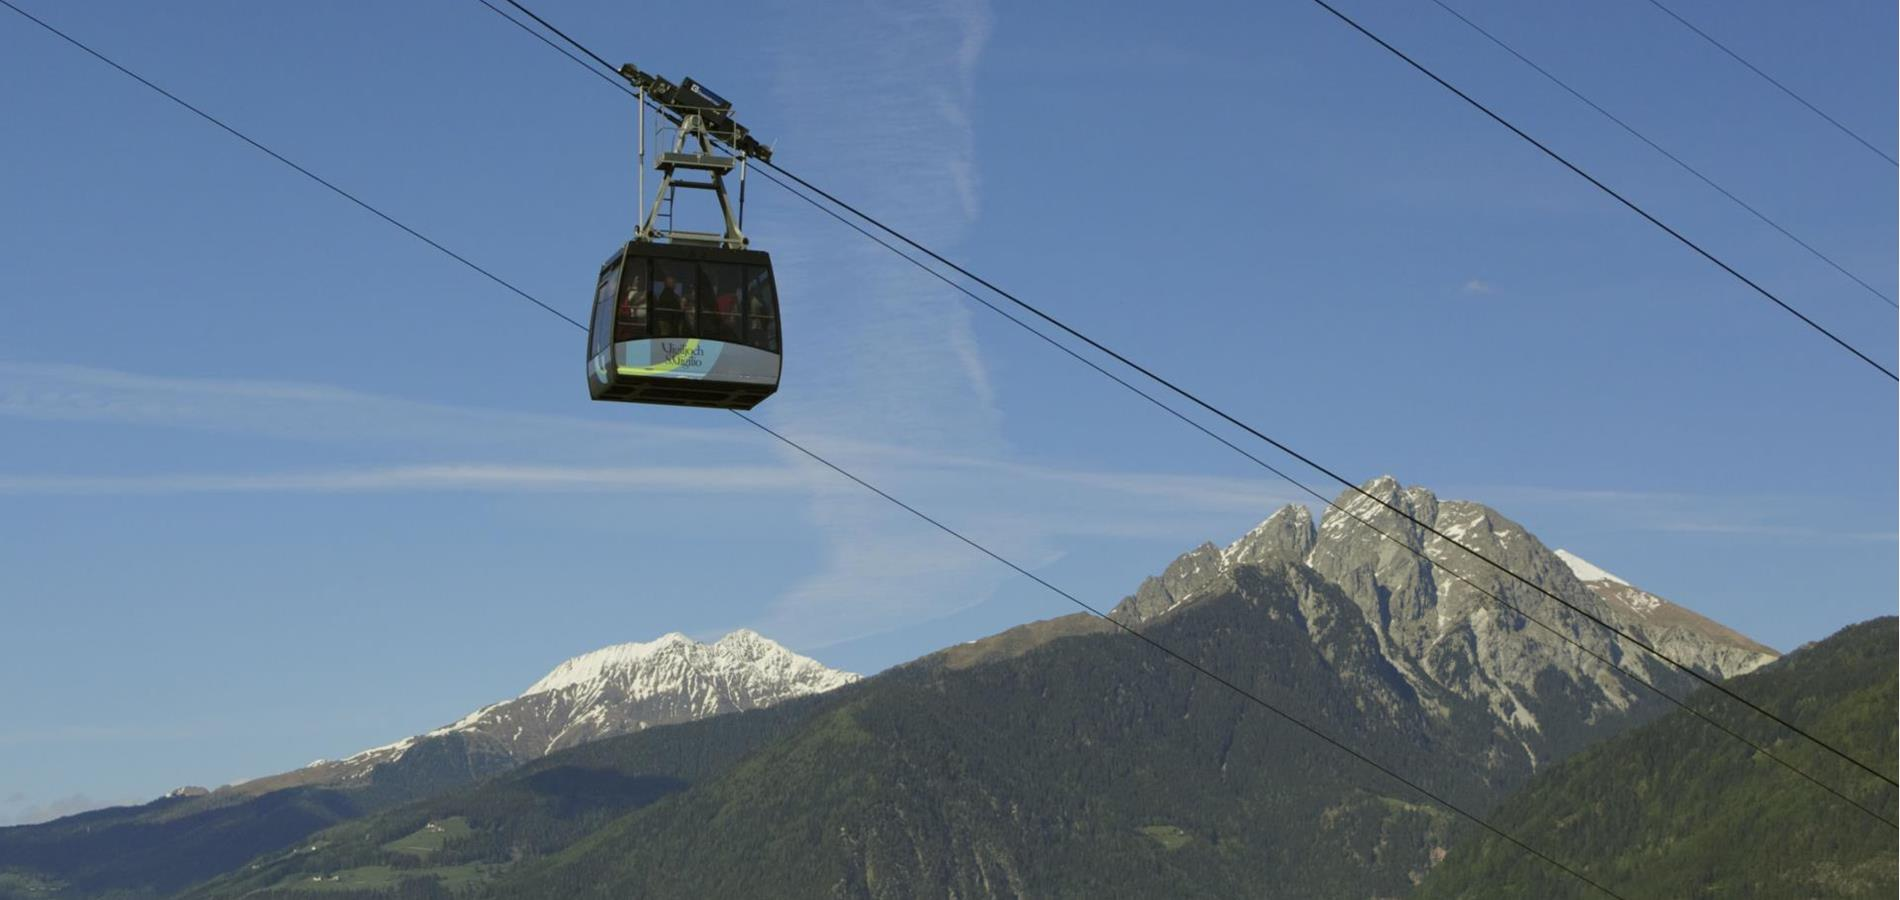 Cable Cars and Chairlifts in Lana and Environs